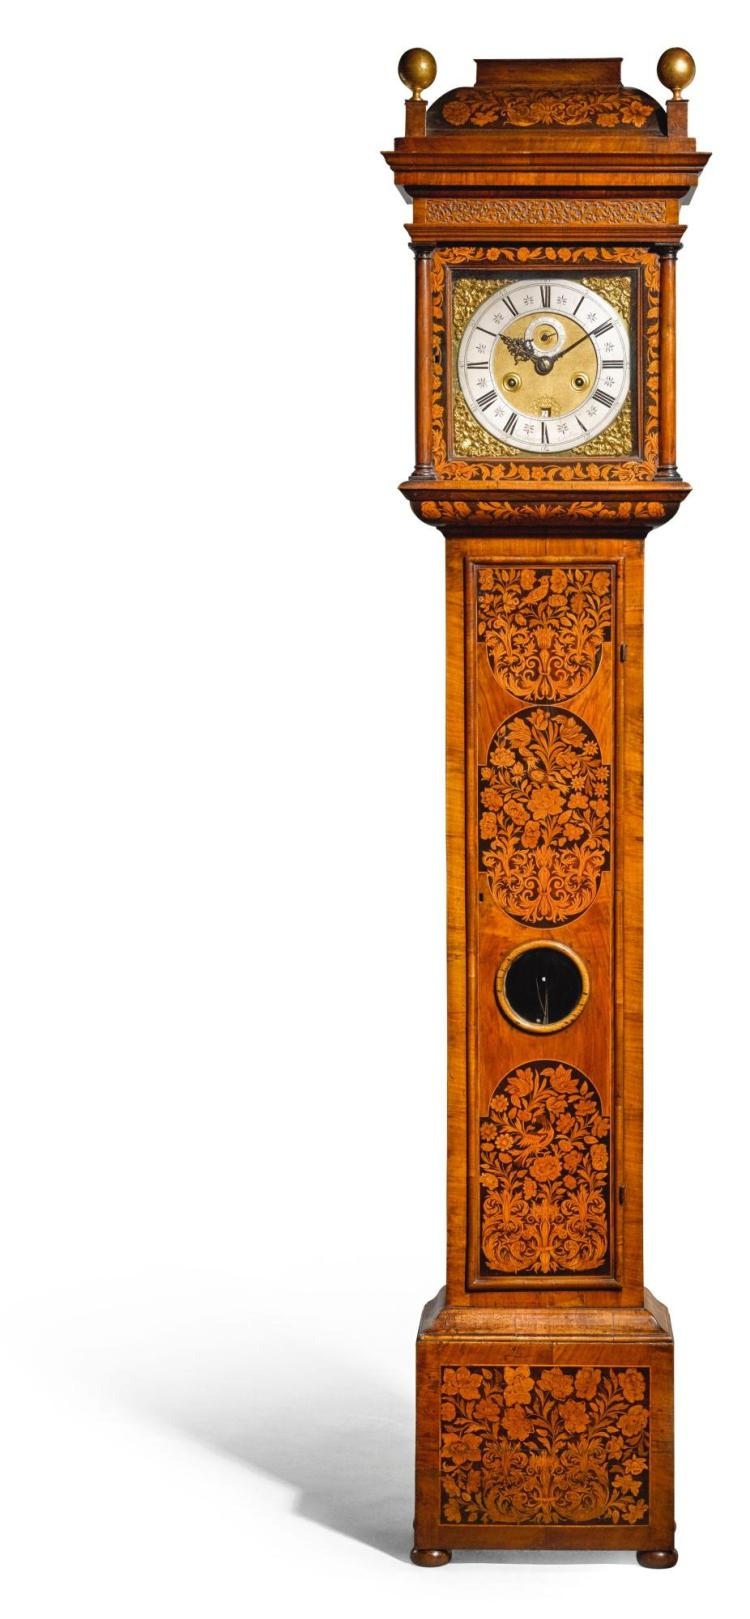 A WILLIAM III WALNUT MARQUETRY MONTH-GOING LONGCASE CLOCK, JOHN BARNETT, LONDON, CIRCA 1695 |